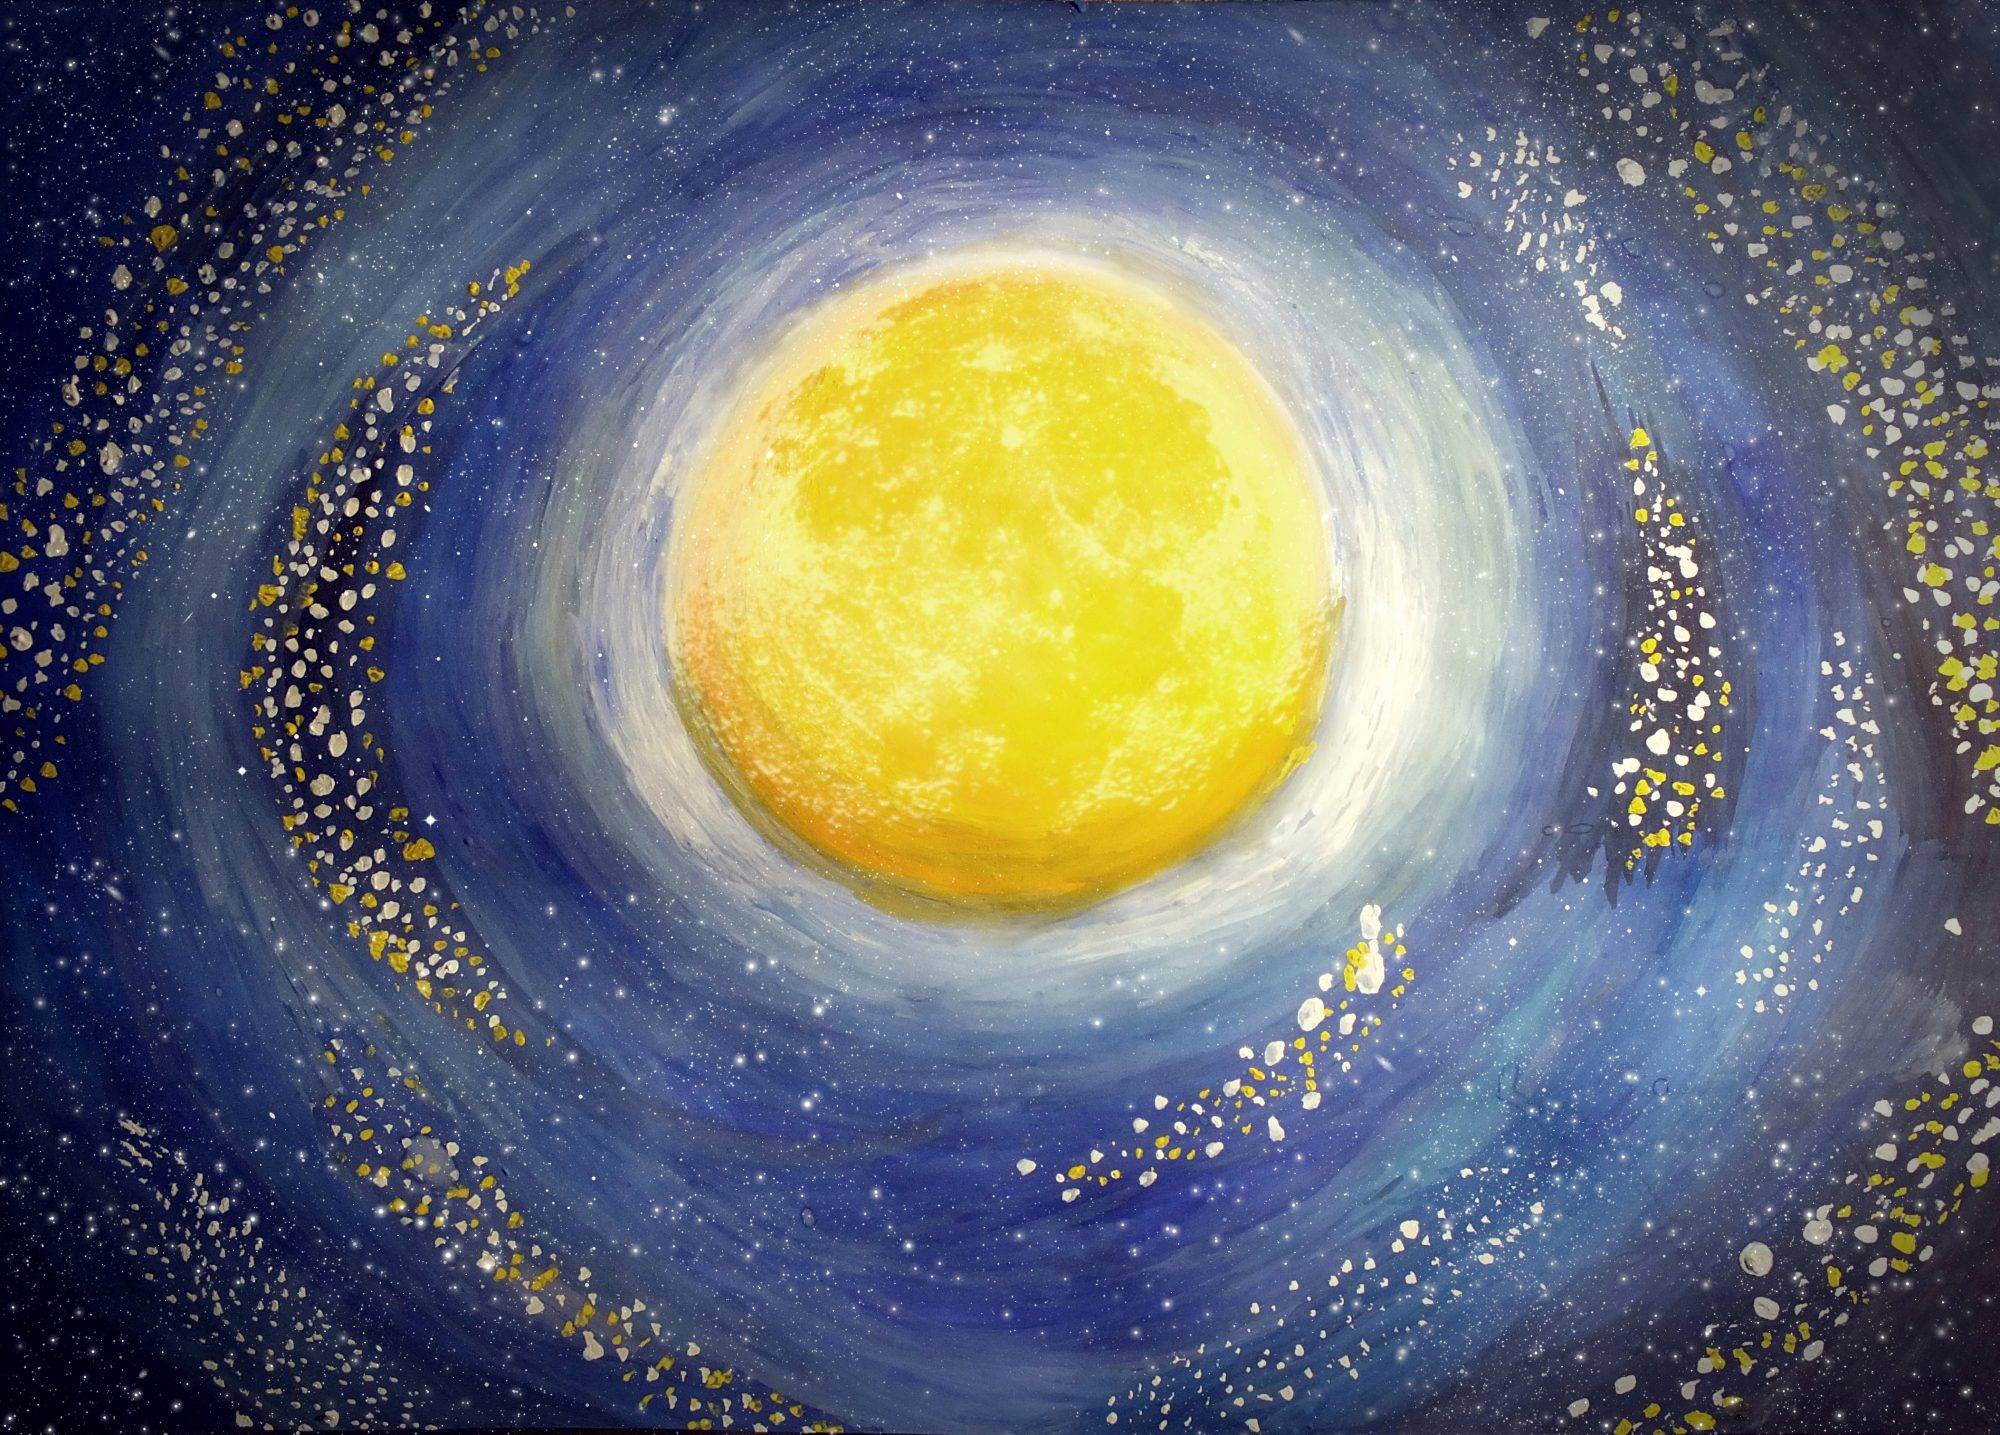 Painted moon